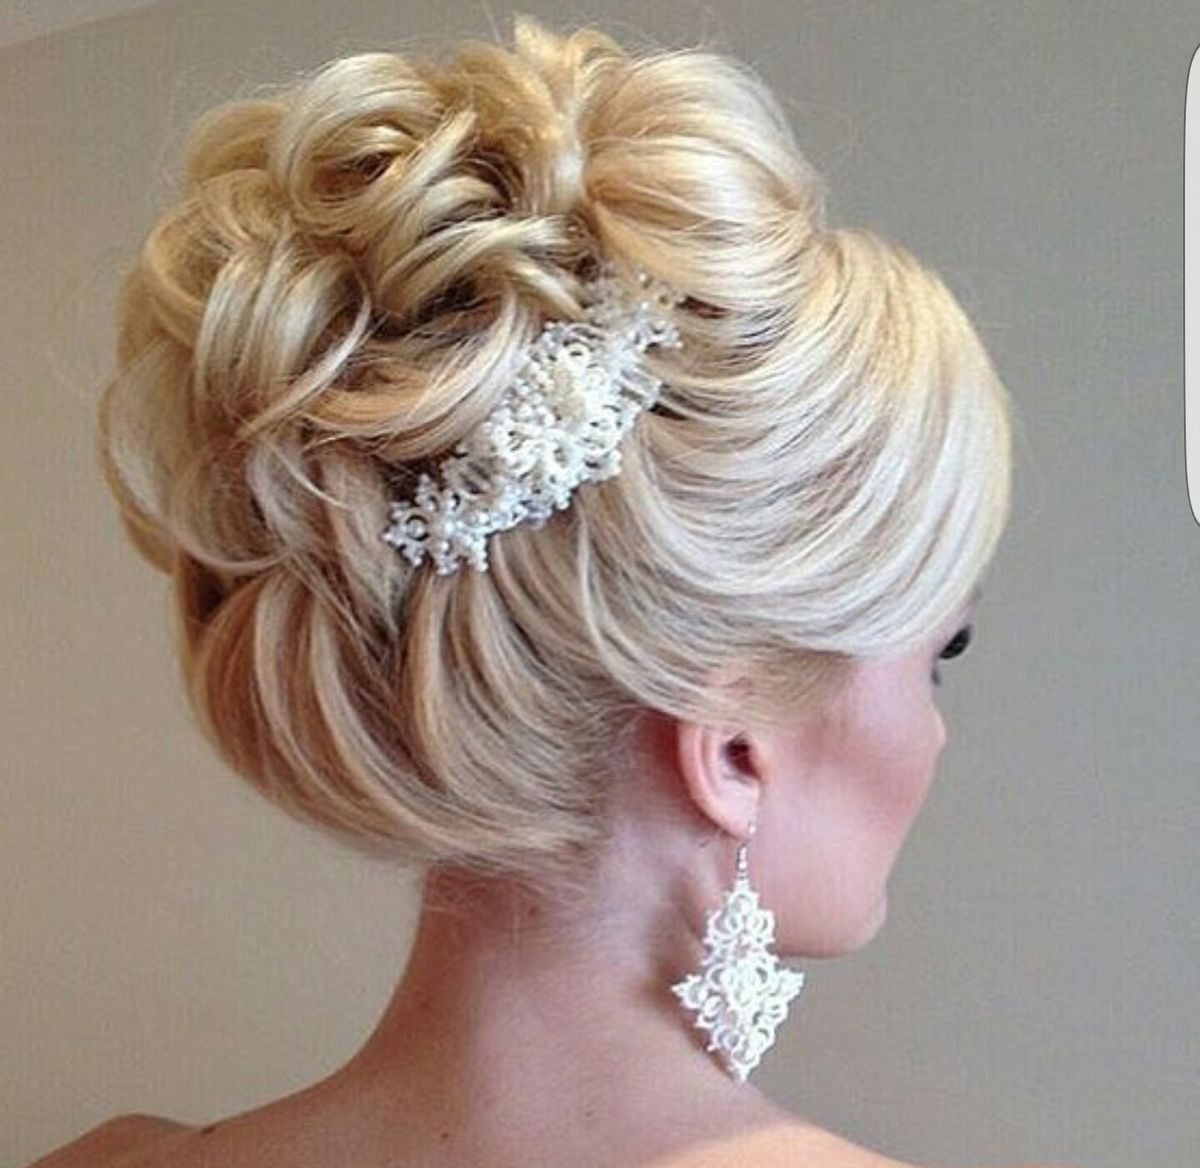 Pin By Anne Marie Theuma On Mother Of The Bride Hair Dos Mother Of The Bride Hair Wedding Hairstyles For Long Hair Wedding Hairstyles Medium Length